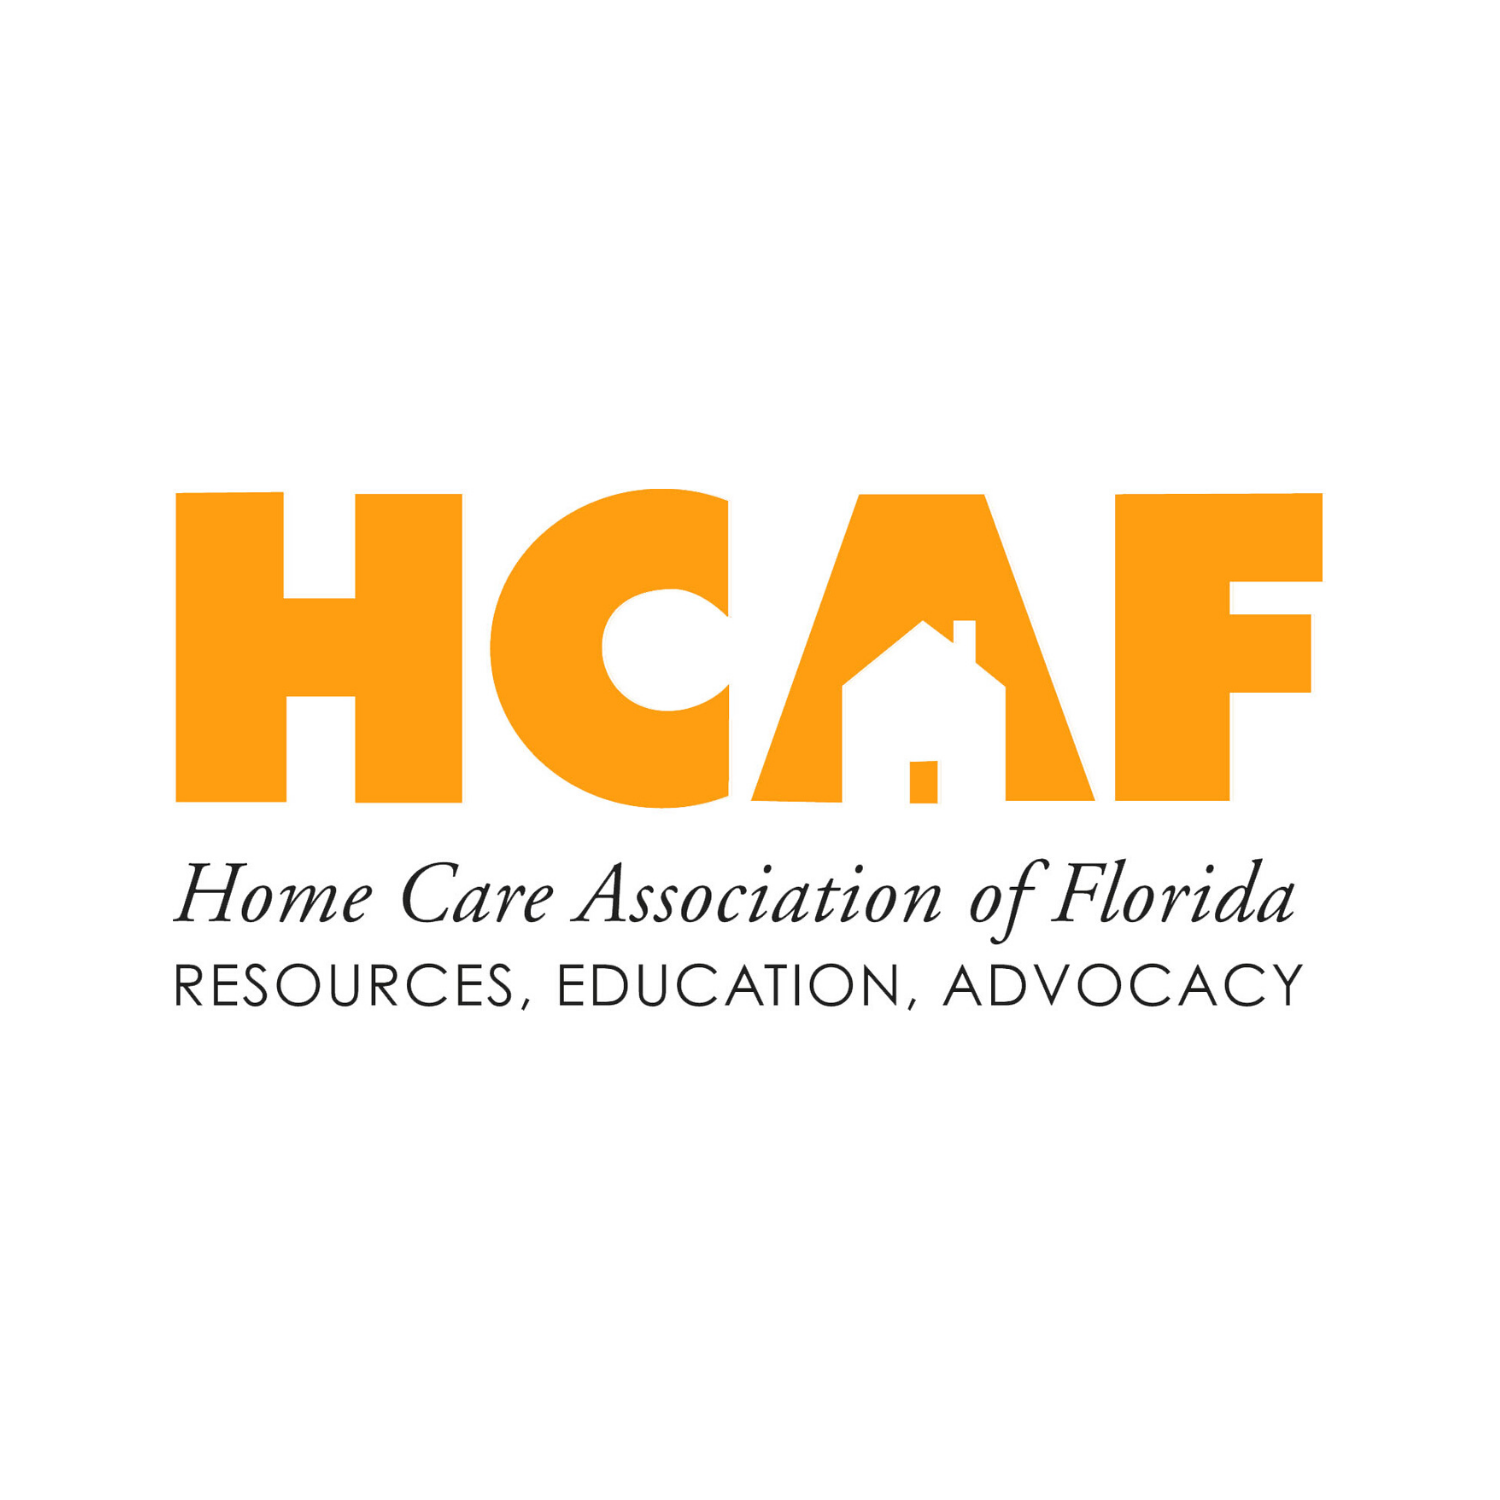 Home Care Association of Florida (HCAF)